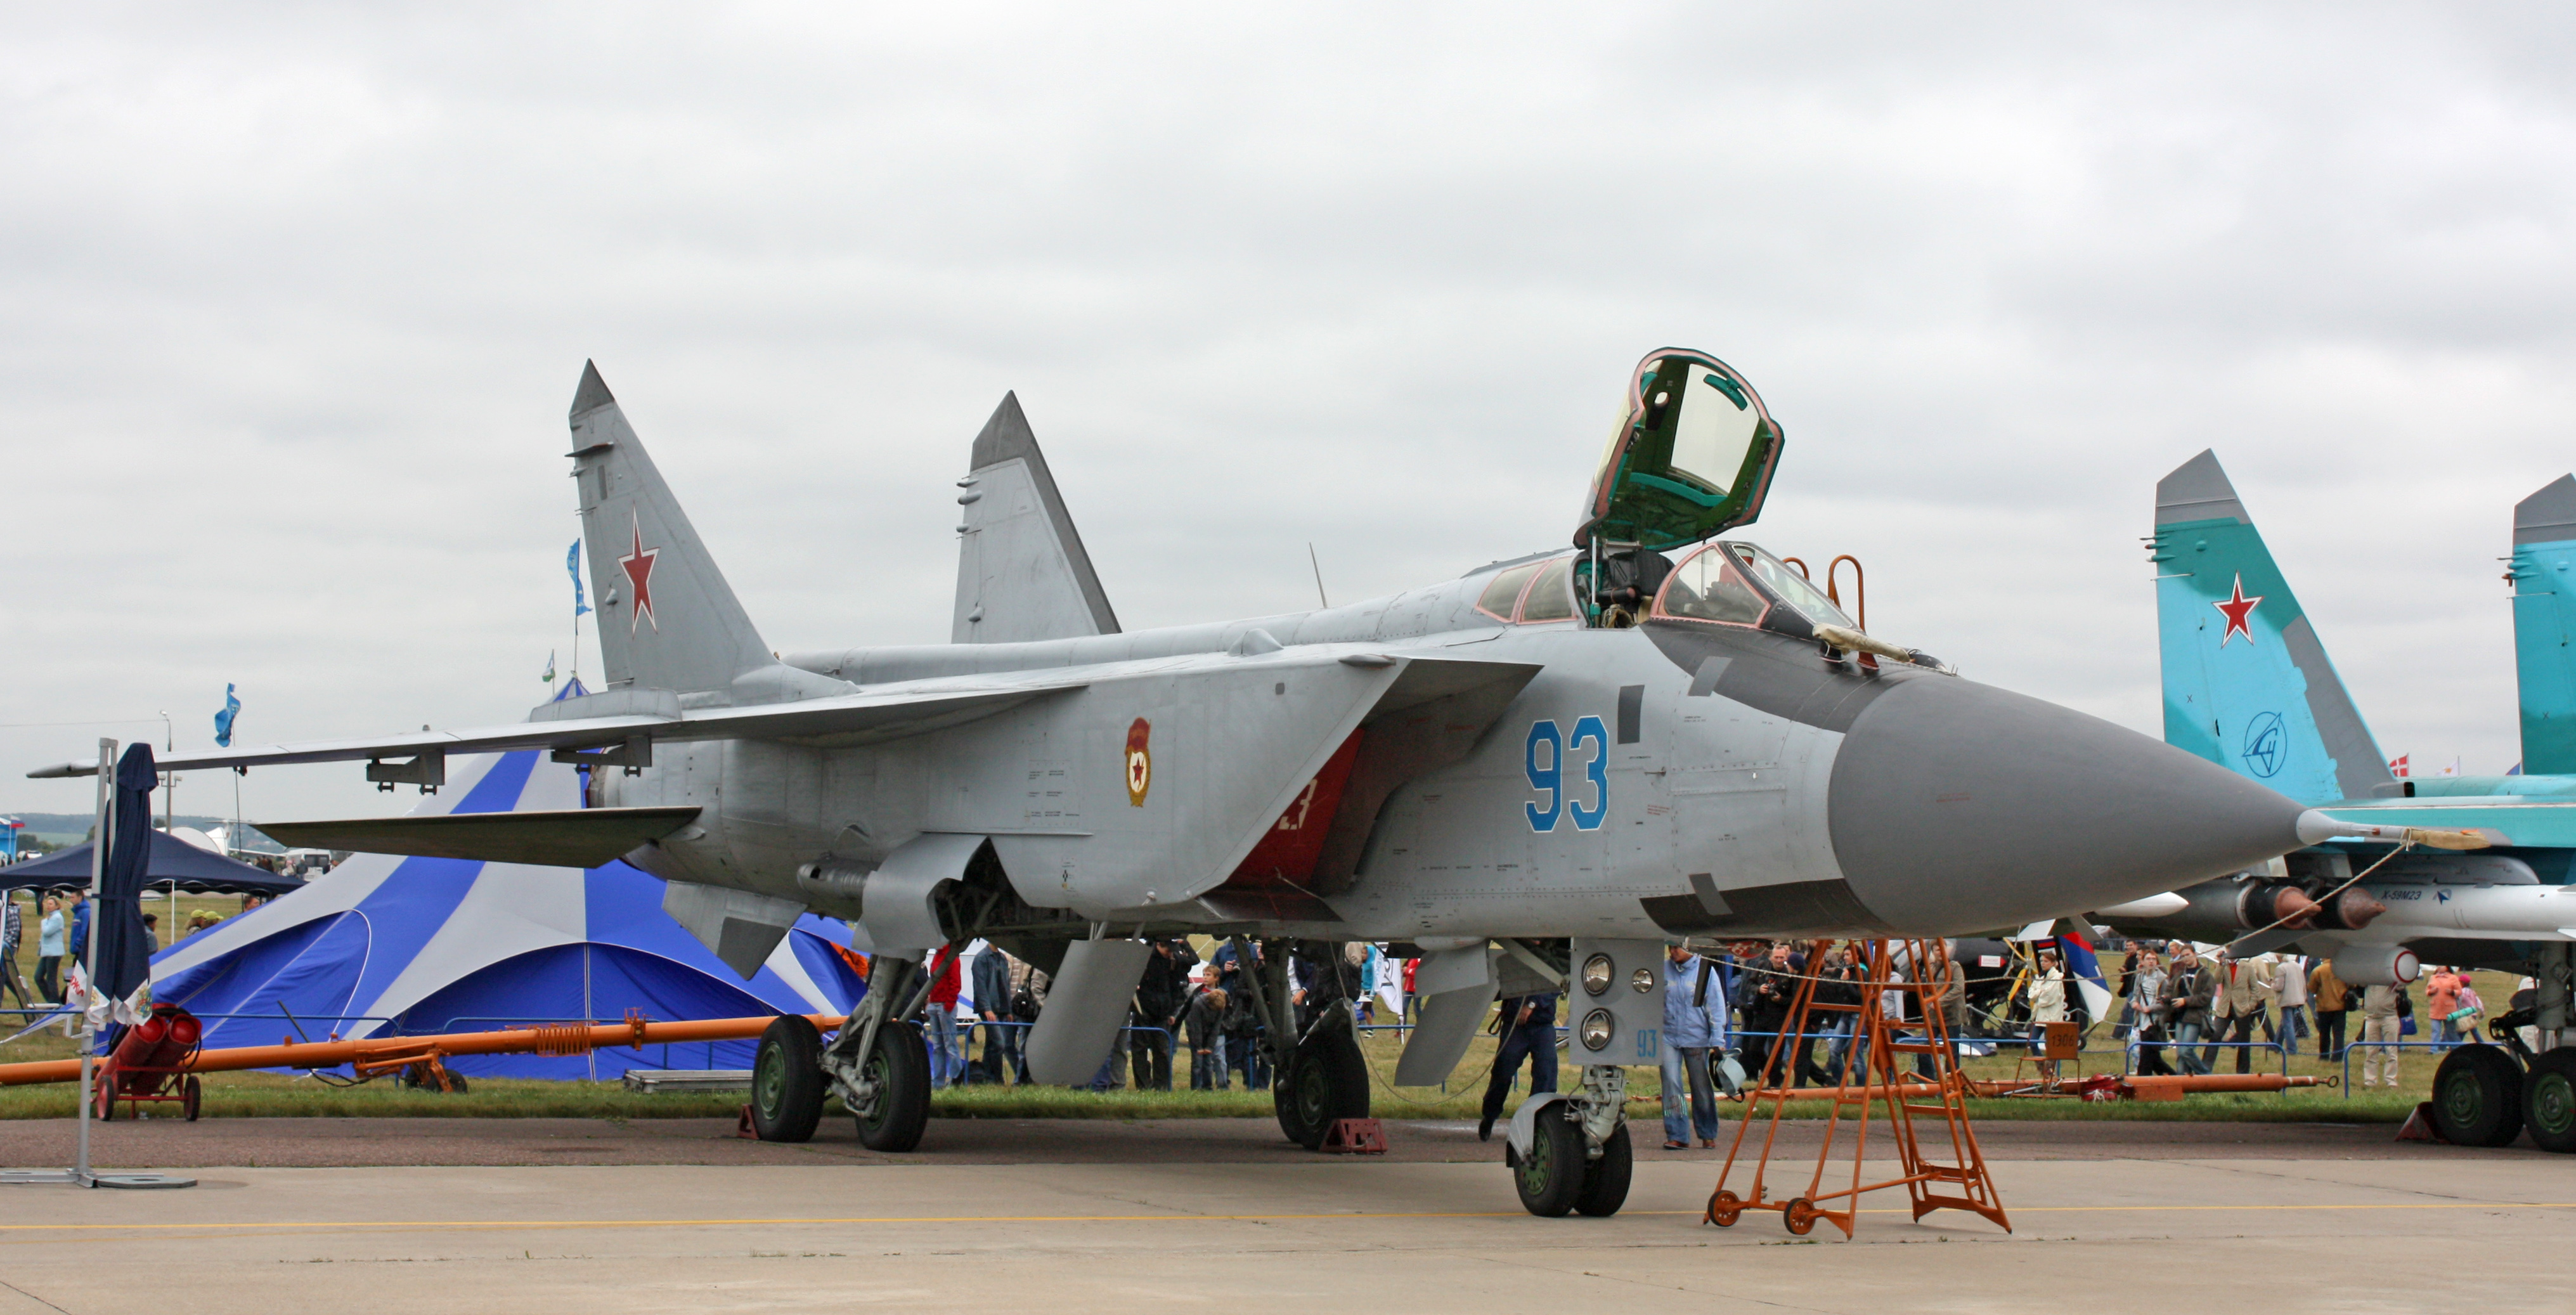 http://upload.wikimedia.org/wikipedia/commons/6/66/MiG-31BM_on_the_MAKS-2009_%2801%29.jpg